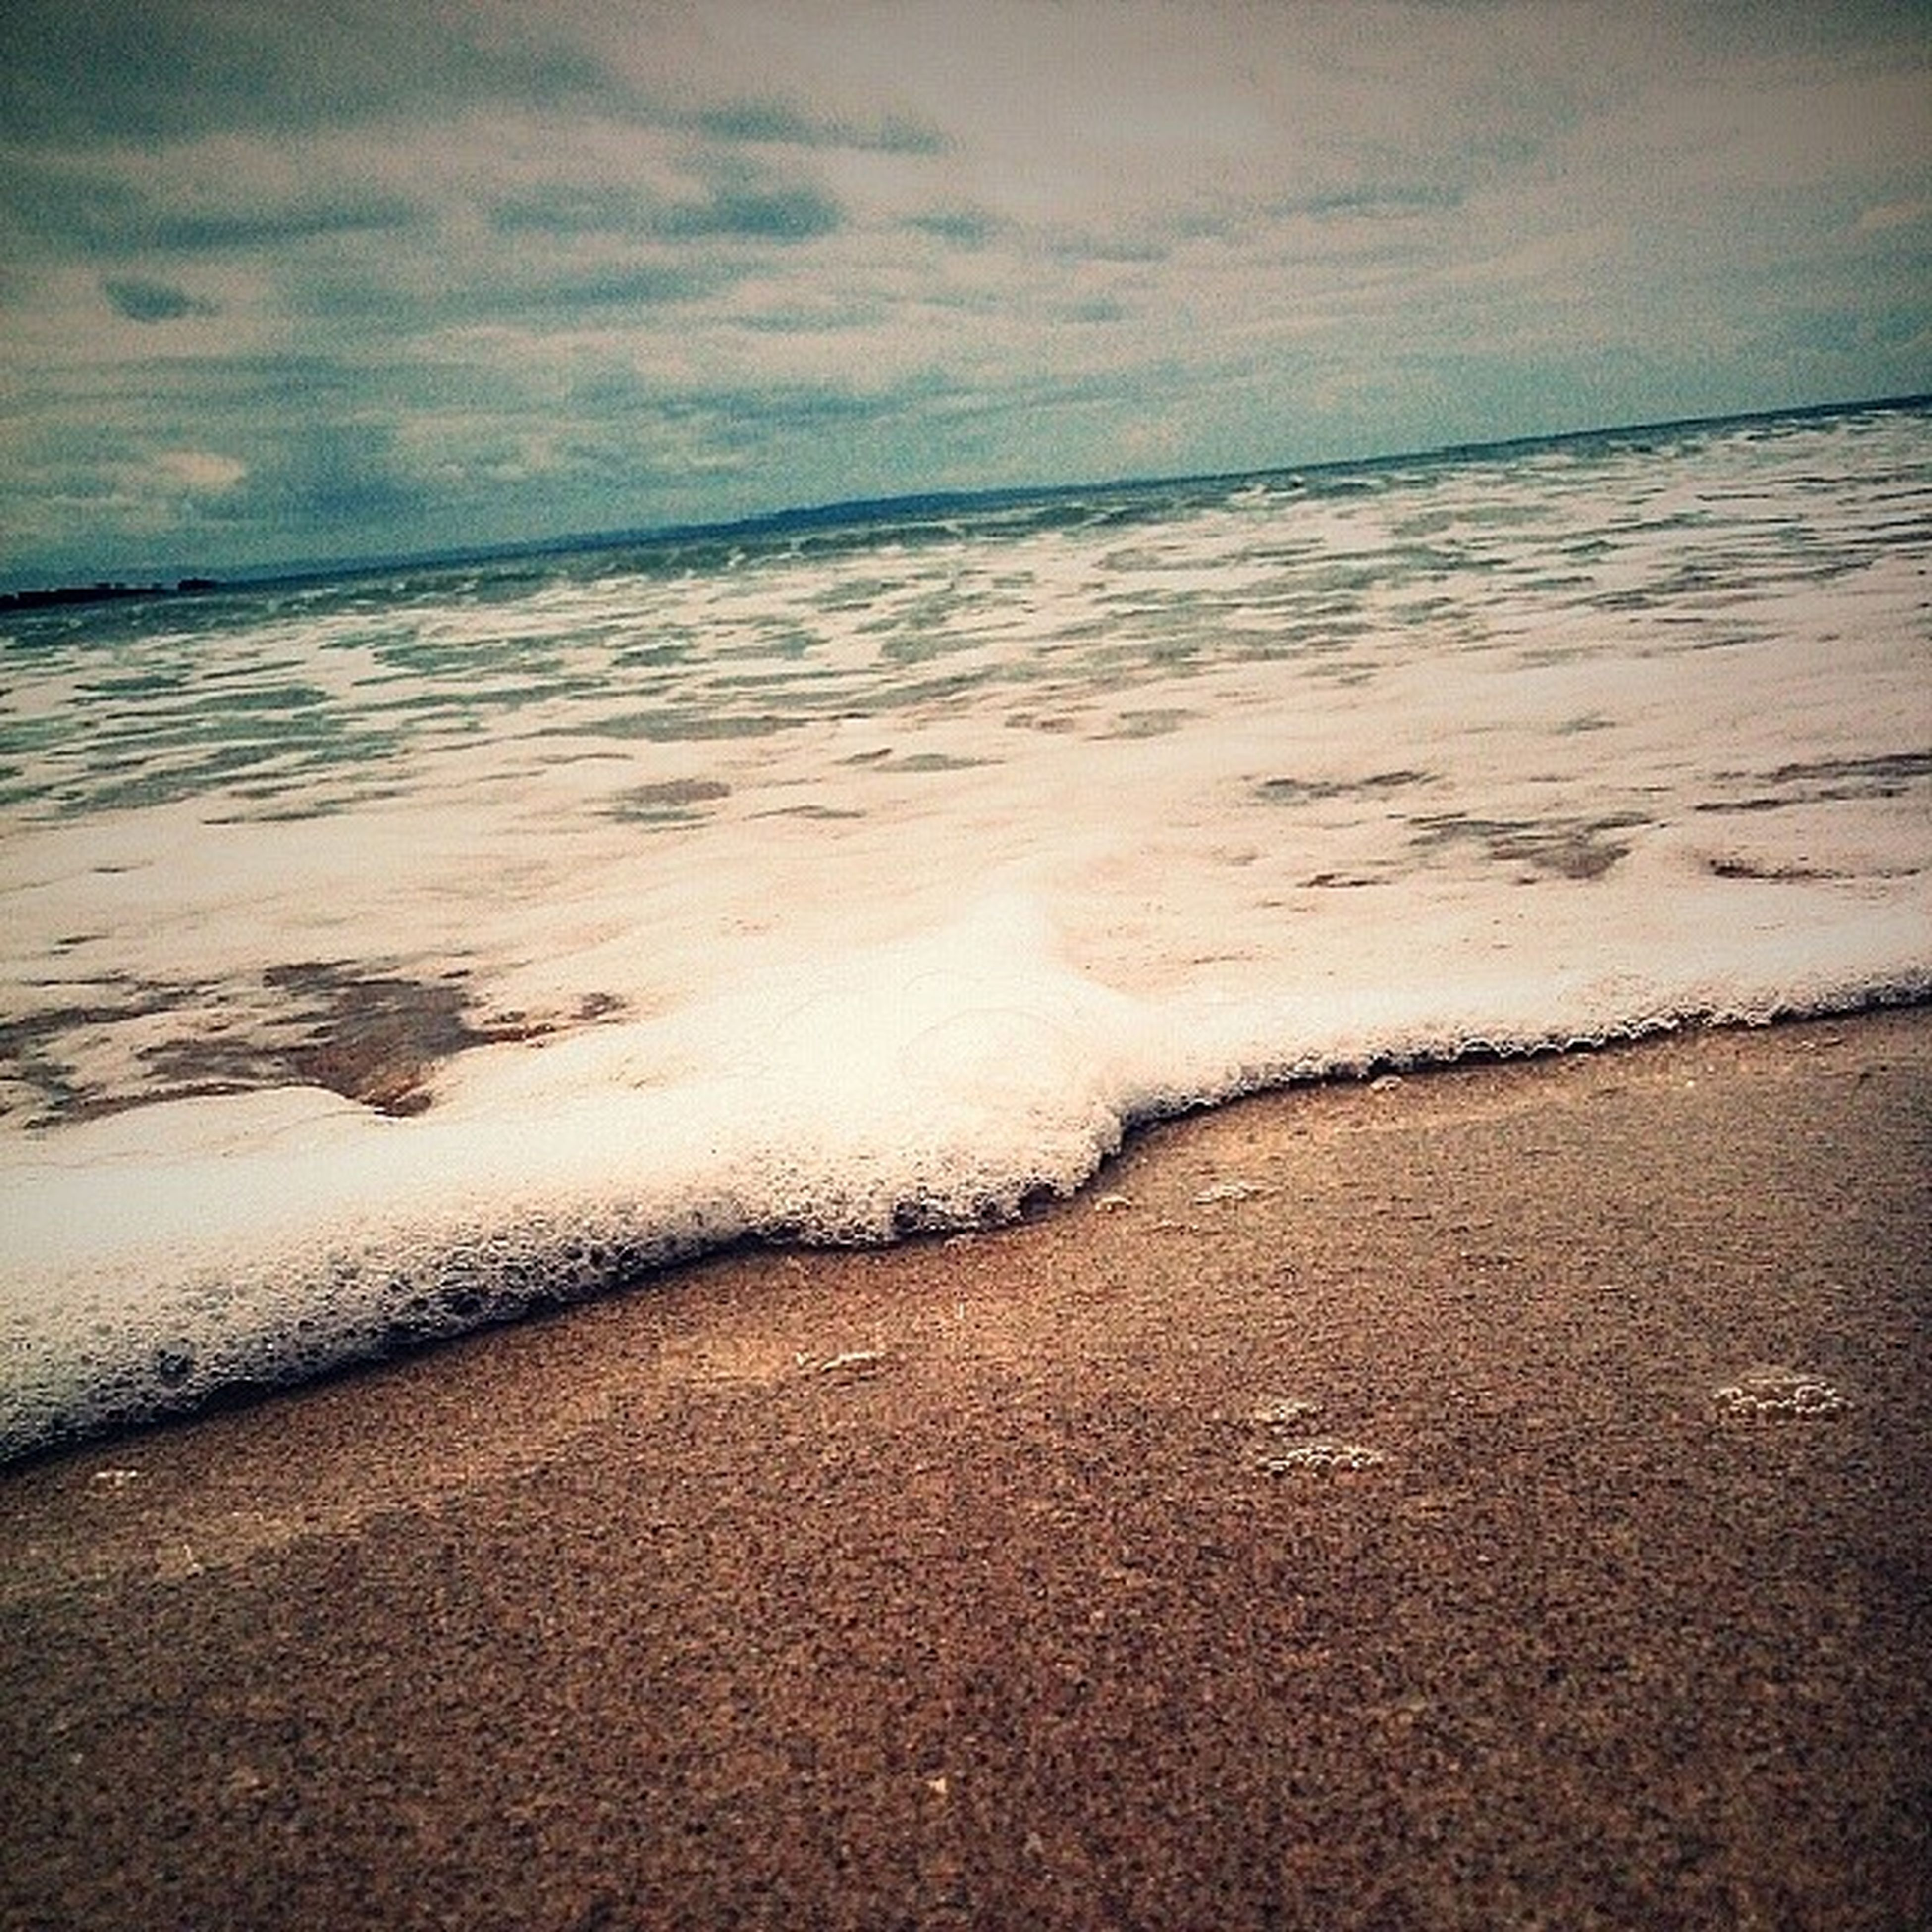 beach, sea, water, sand, shore, horizon over water, wave, surf, sky, tranquility, tranquil scene, scenics, beauty in nature, nature, coastline, cloud - sky, idyllic, footprint, wet, outdoors